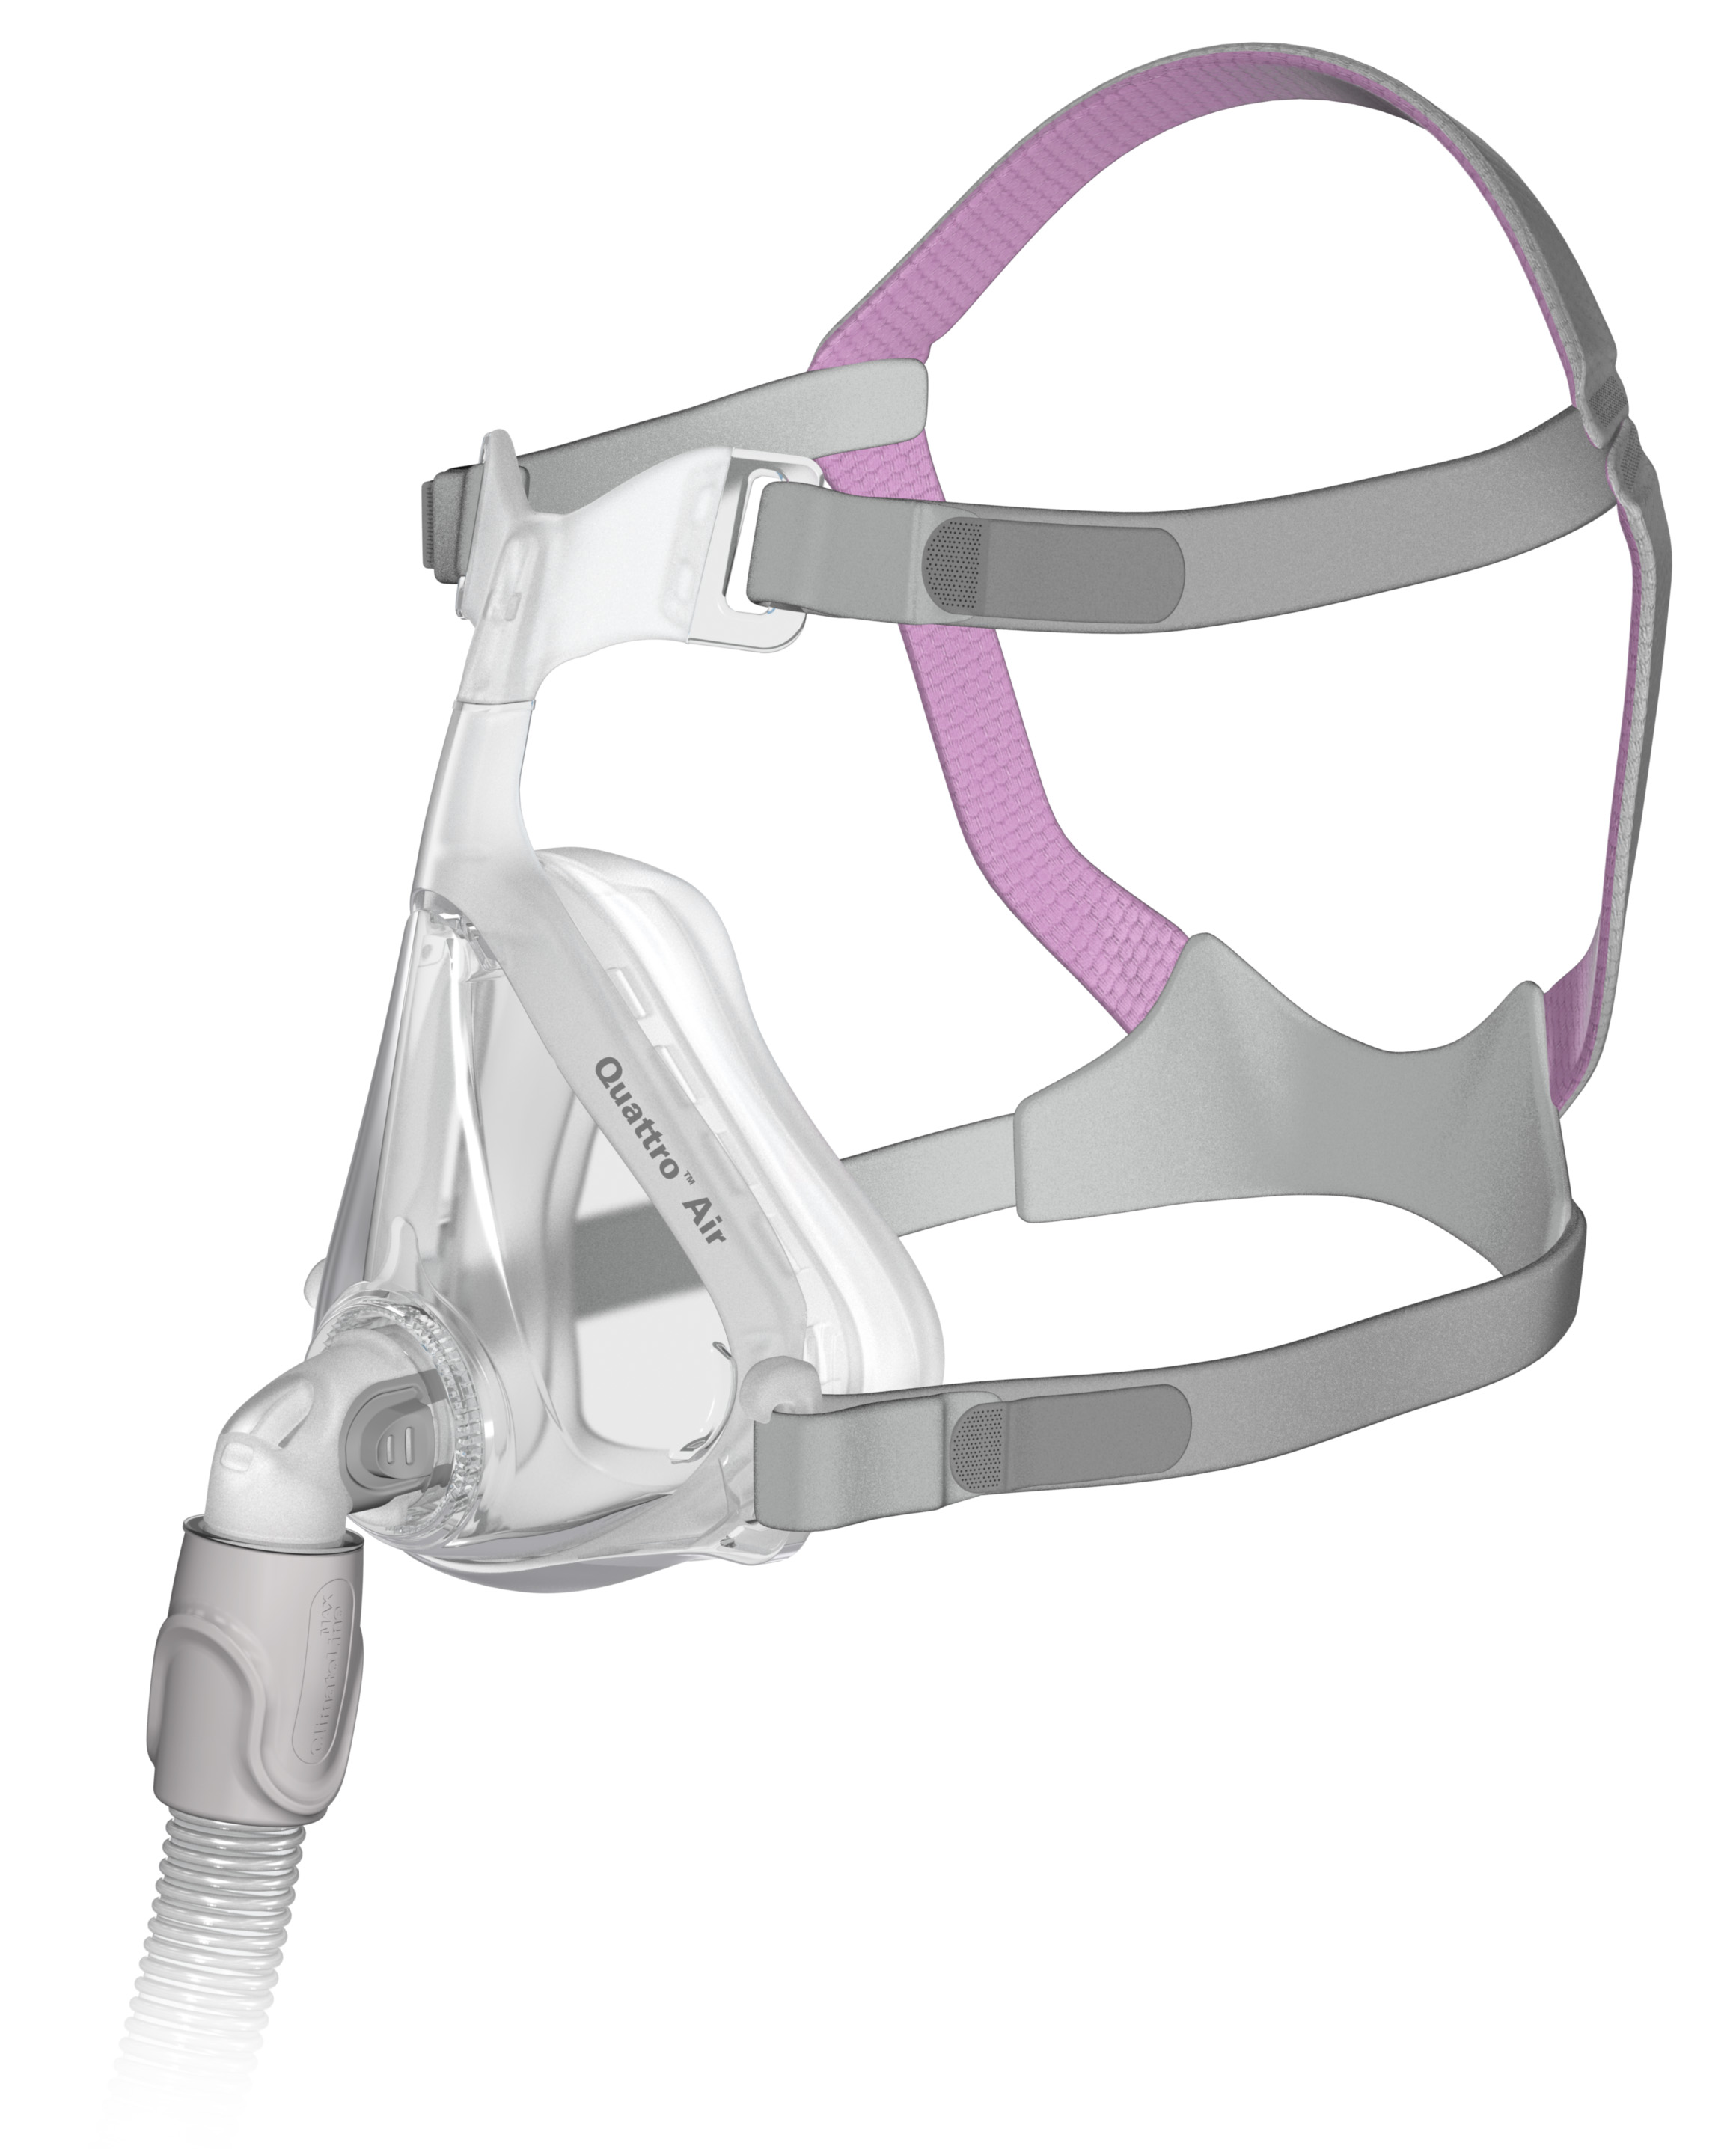 Quattro Air For Her – Product Shot – Mask with Headgear